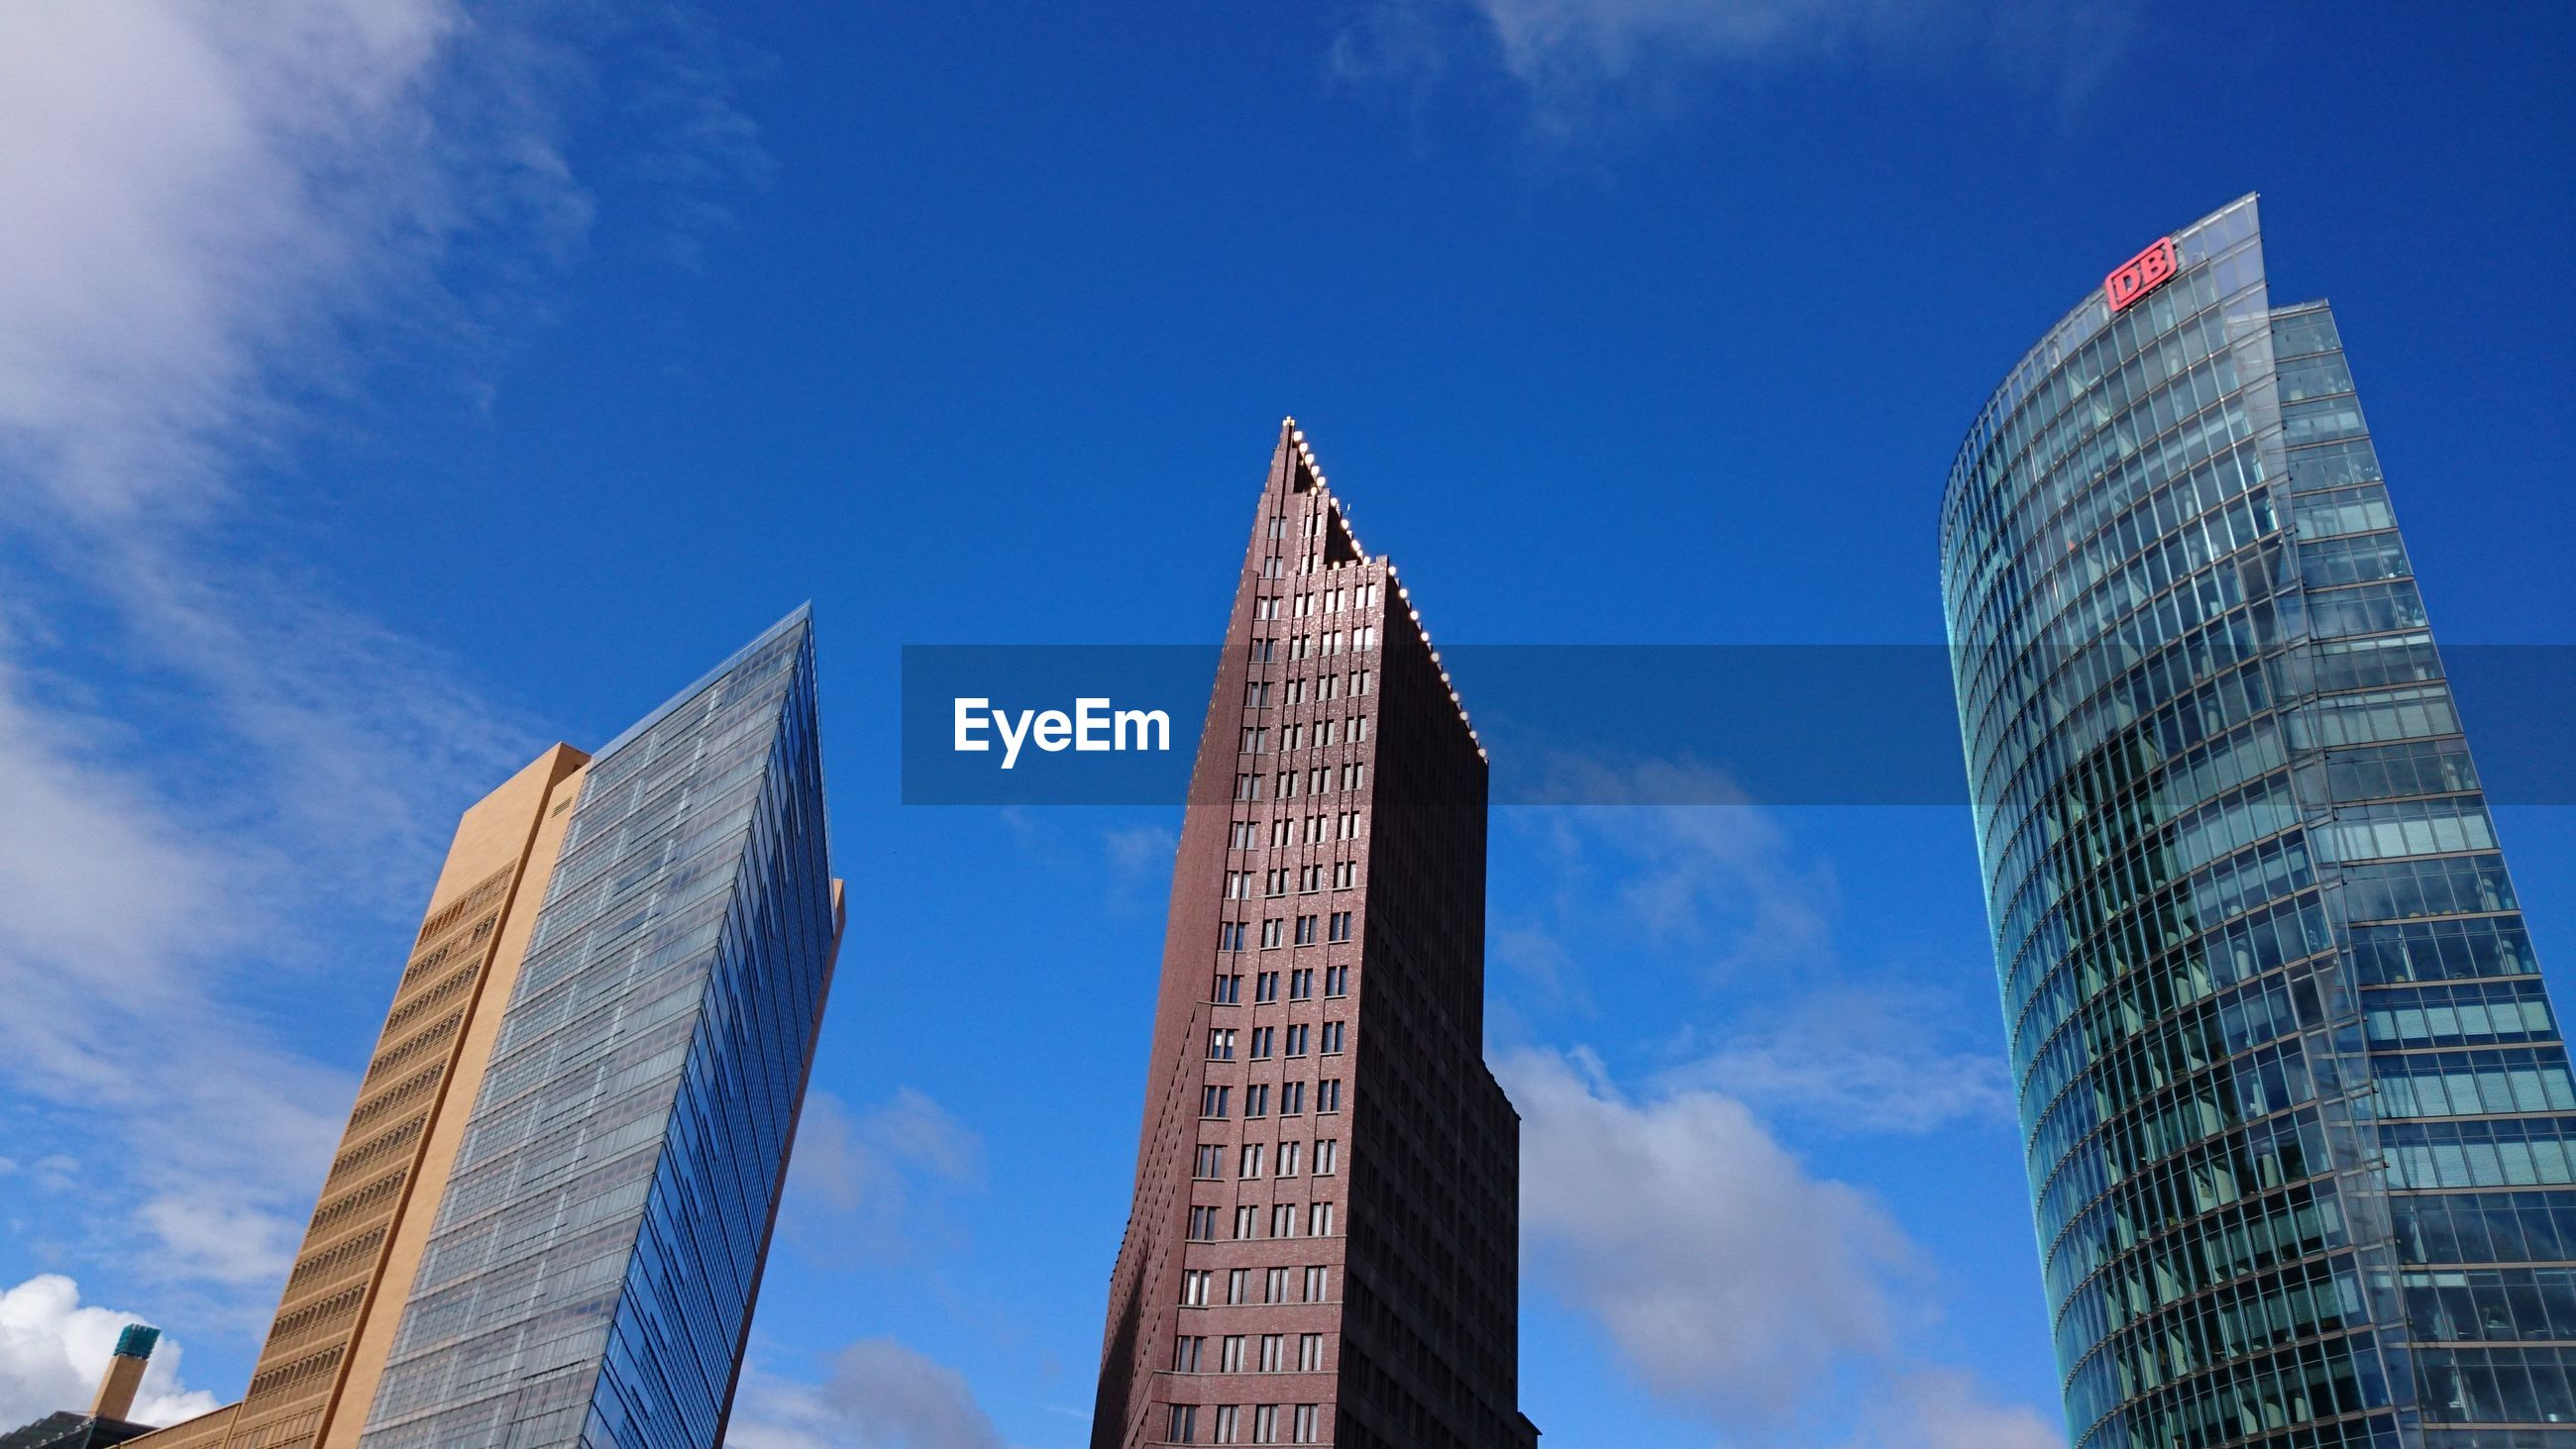 architecture, building exterior, built structure, tall - high, skyscraper, low angle view, tower, city, modern, office building, sky, capital cities, blue, famous place, travel destinations, tall, cloud - sky, day, city life, outdoors, financial district, tourism, cloud, no people, development